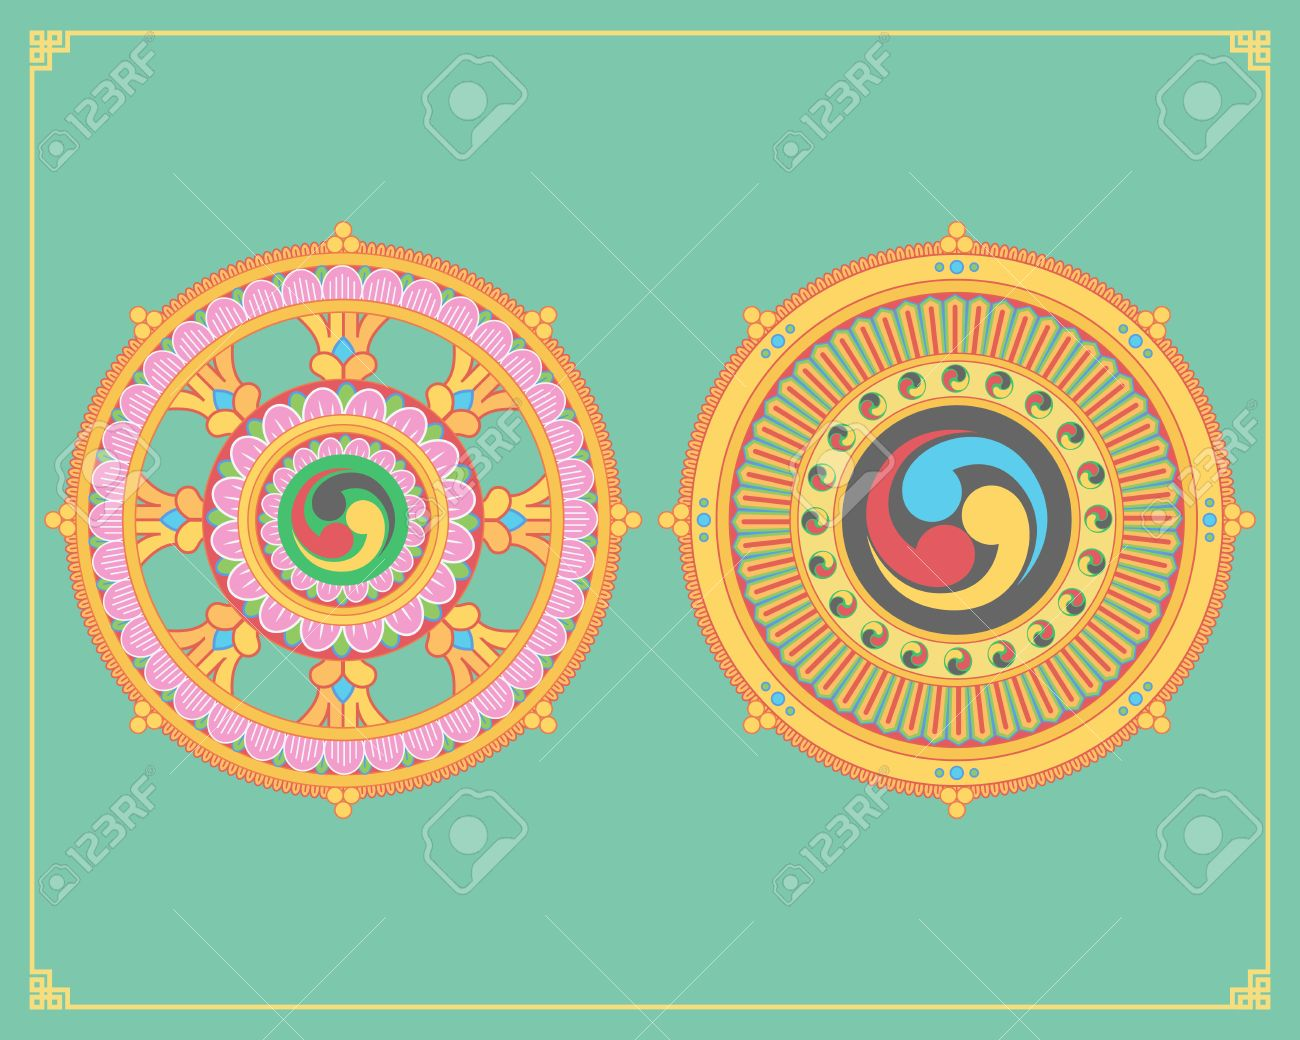 Dharma wheel dharmachakra icons wheel of dharma in flat design dharma wheel dharmachakra icons wheel of dharma in flat design buddhism symbols buycottarizona